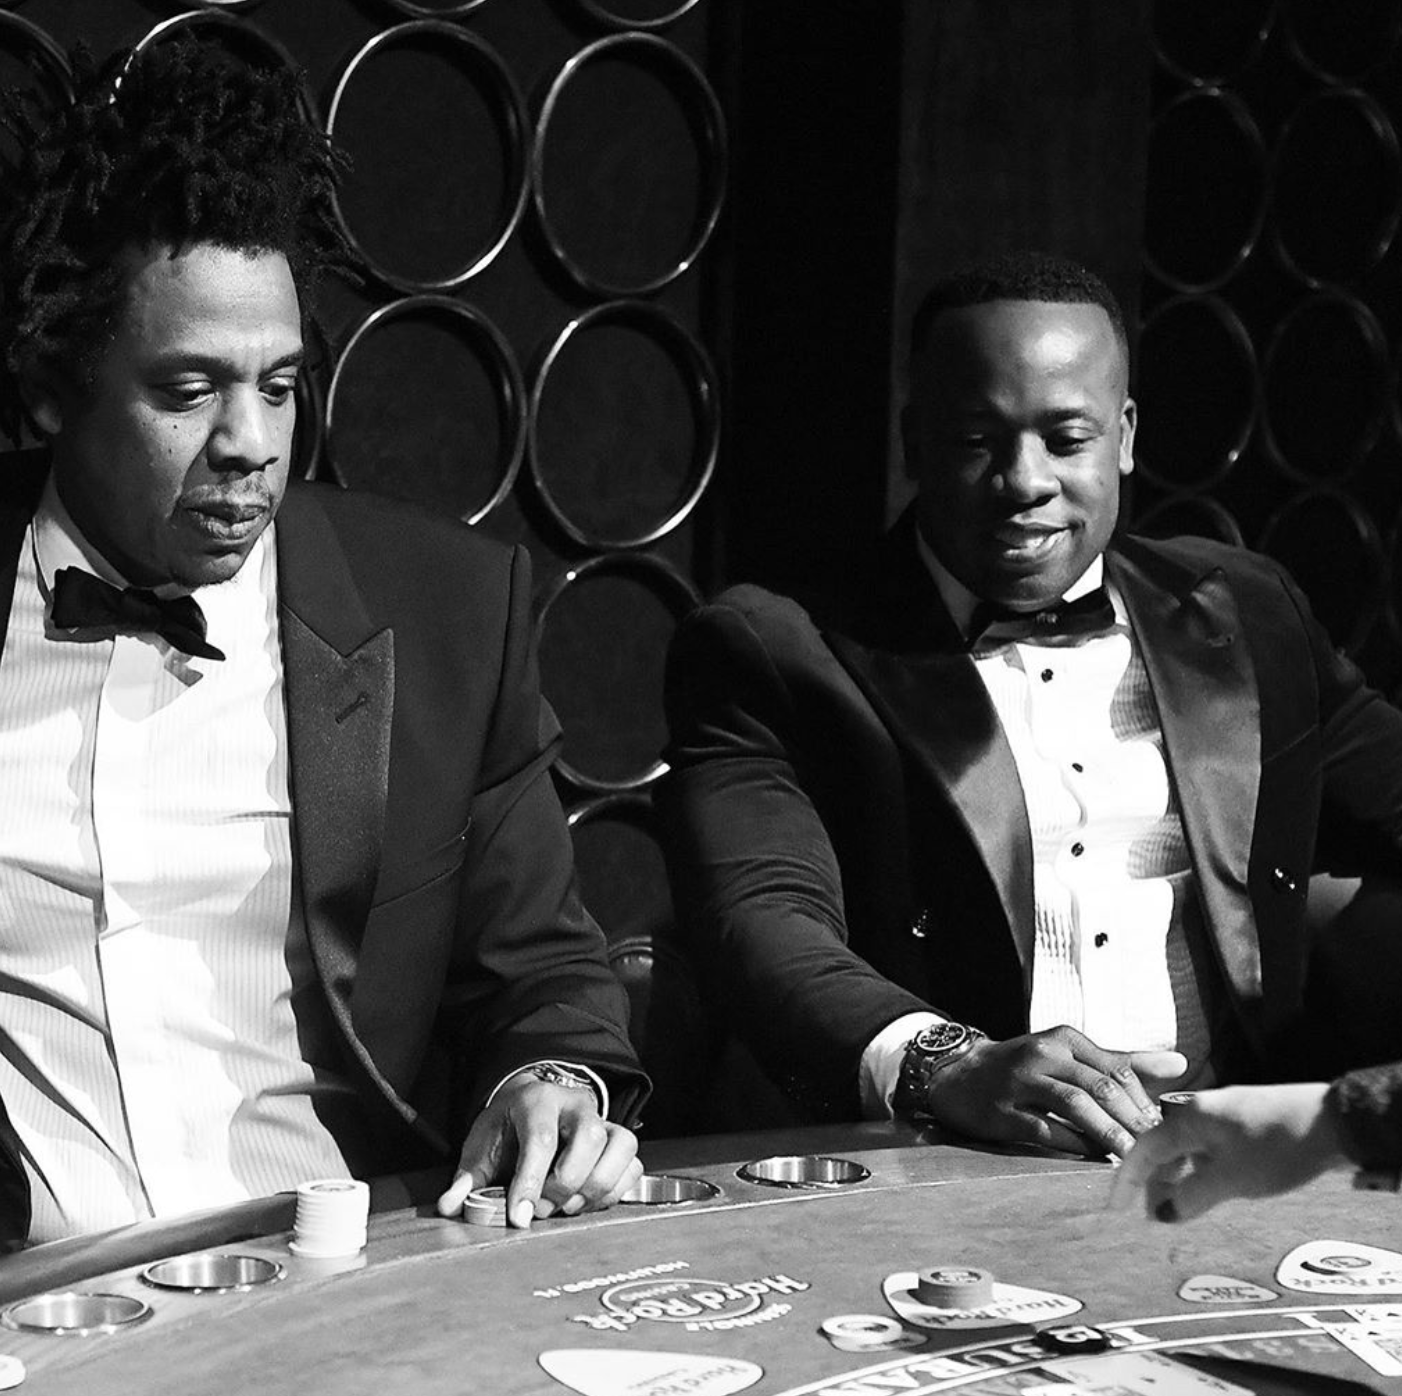 #JayDay: Jay-Z just used a bunch of solid gold Rolex Daytonas as VIP invitations